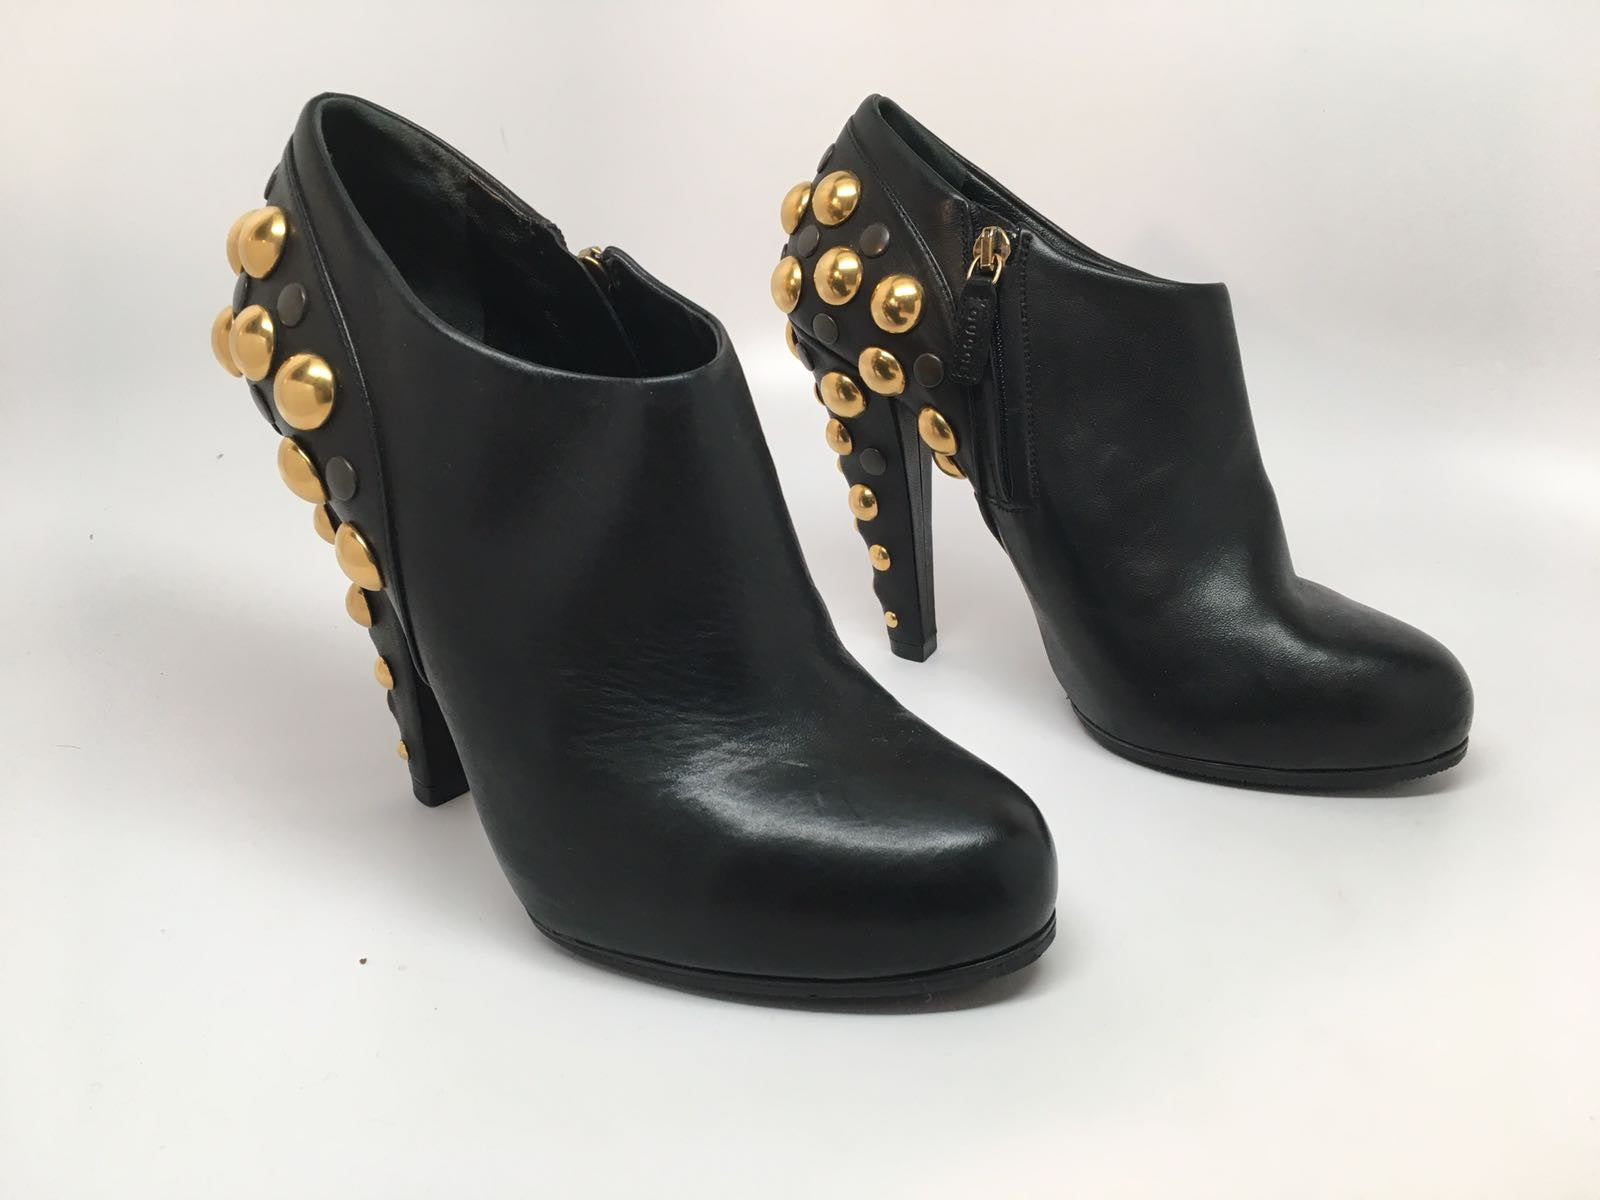 f5ab2df82 GUCCI BABOUSKA BLACK GOLD STUDDED ANKLE BOOTS - SIZE 36.5 – Hebster Boutique